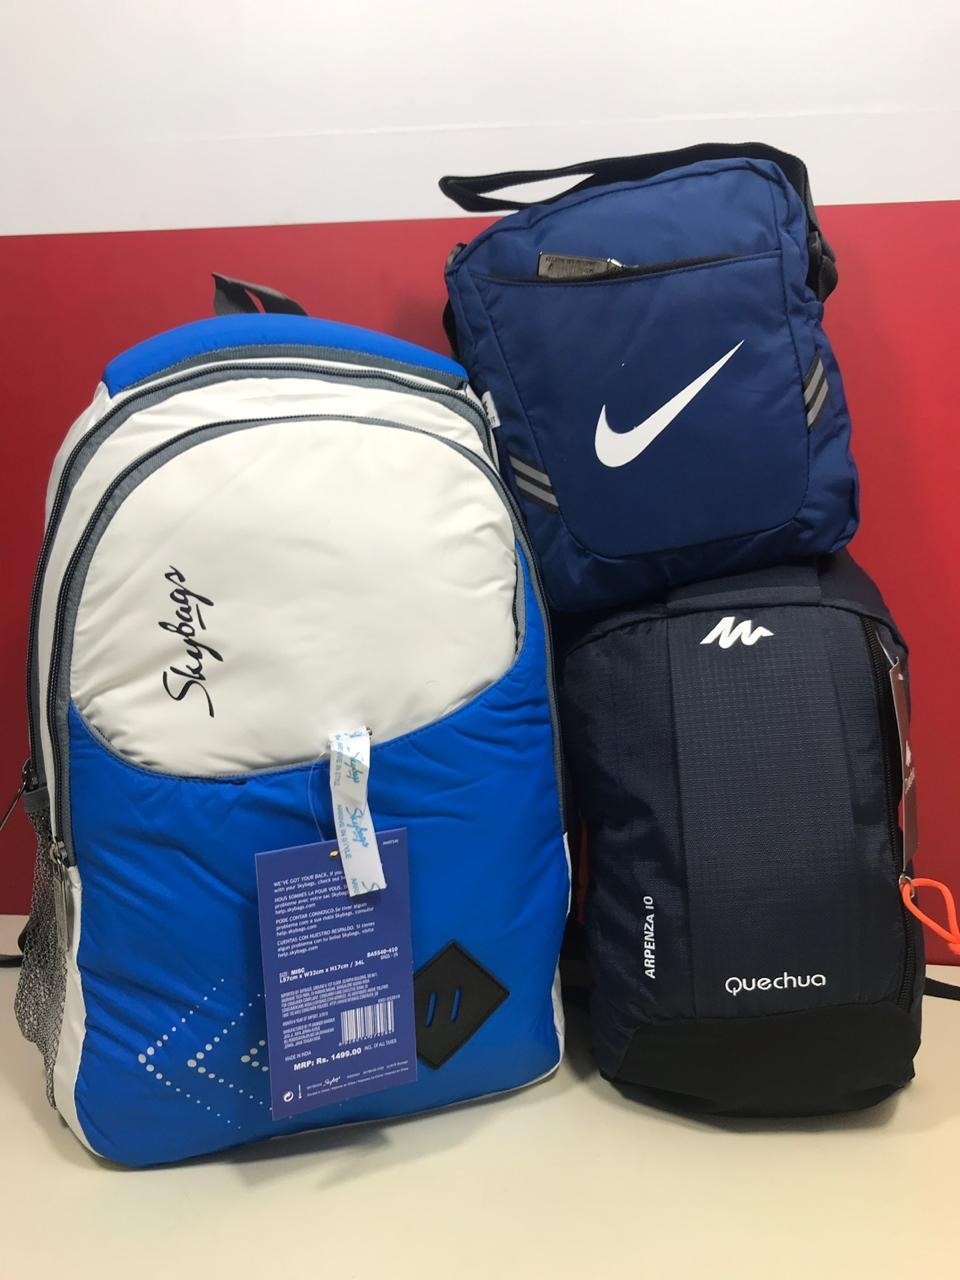 SKYBAG , quechua bagpack, and nike sling SET of 3